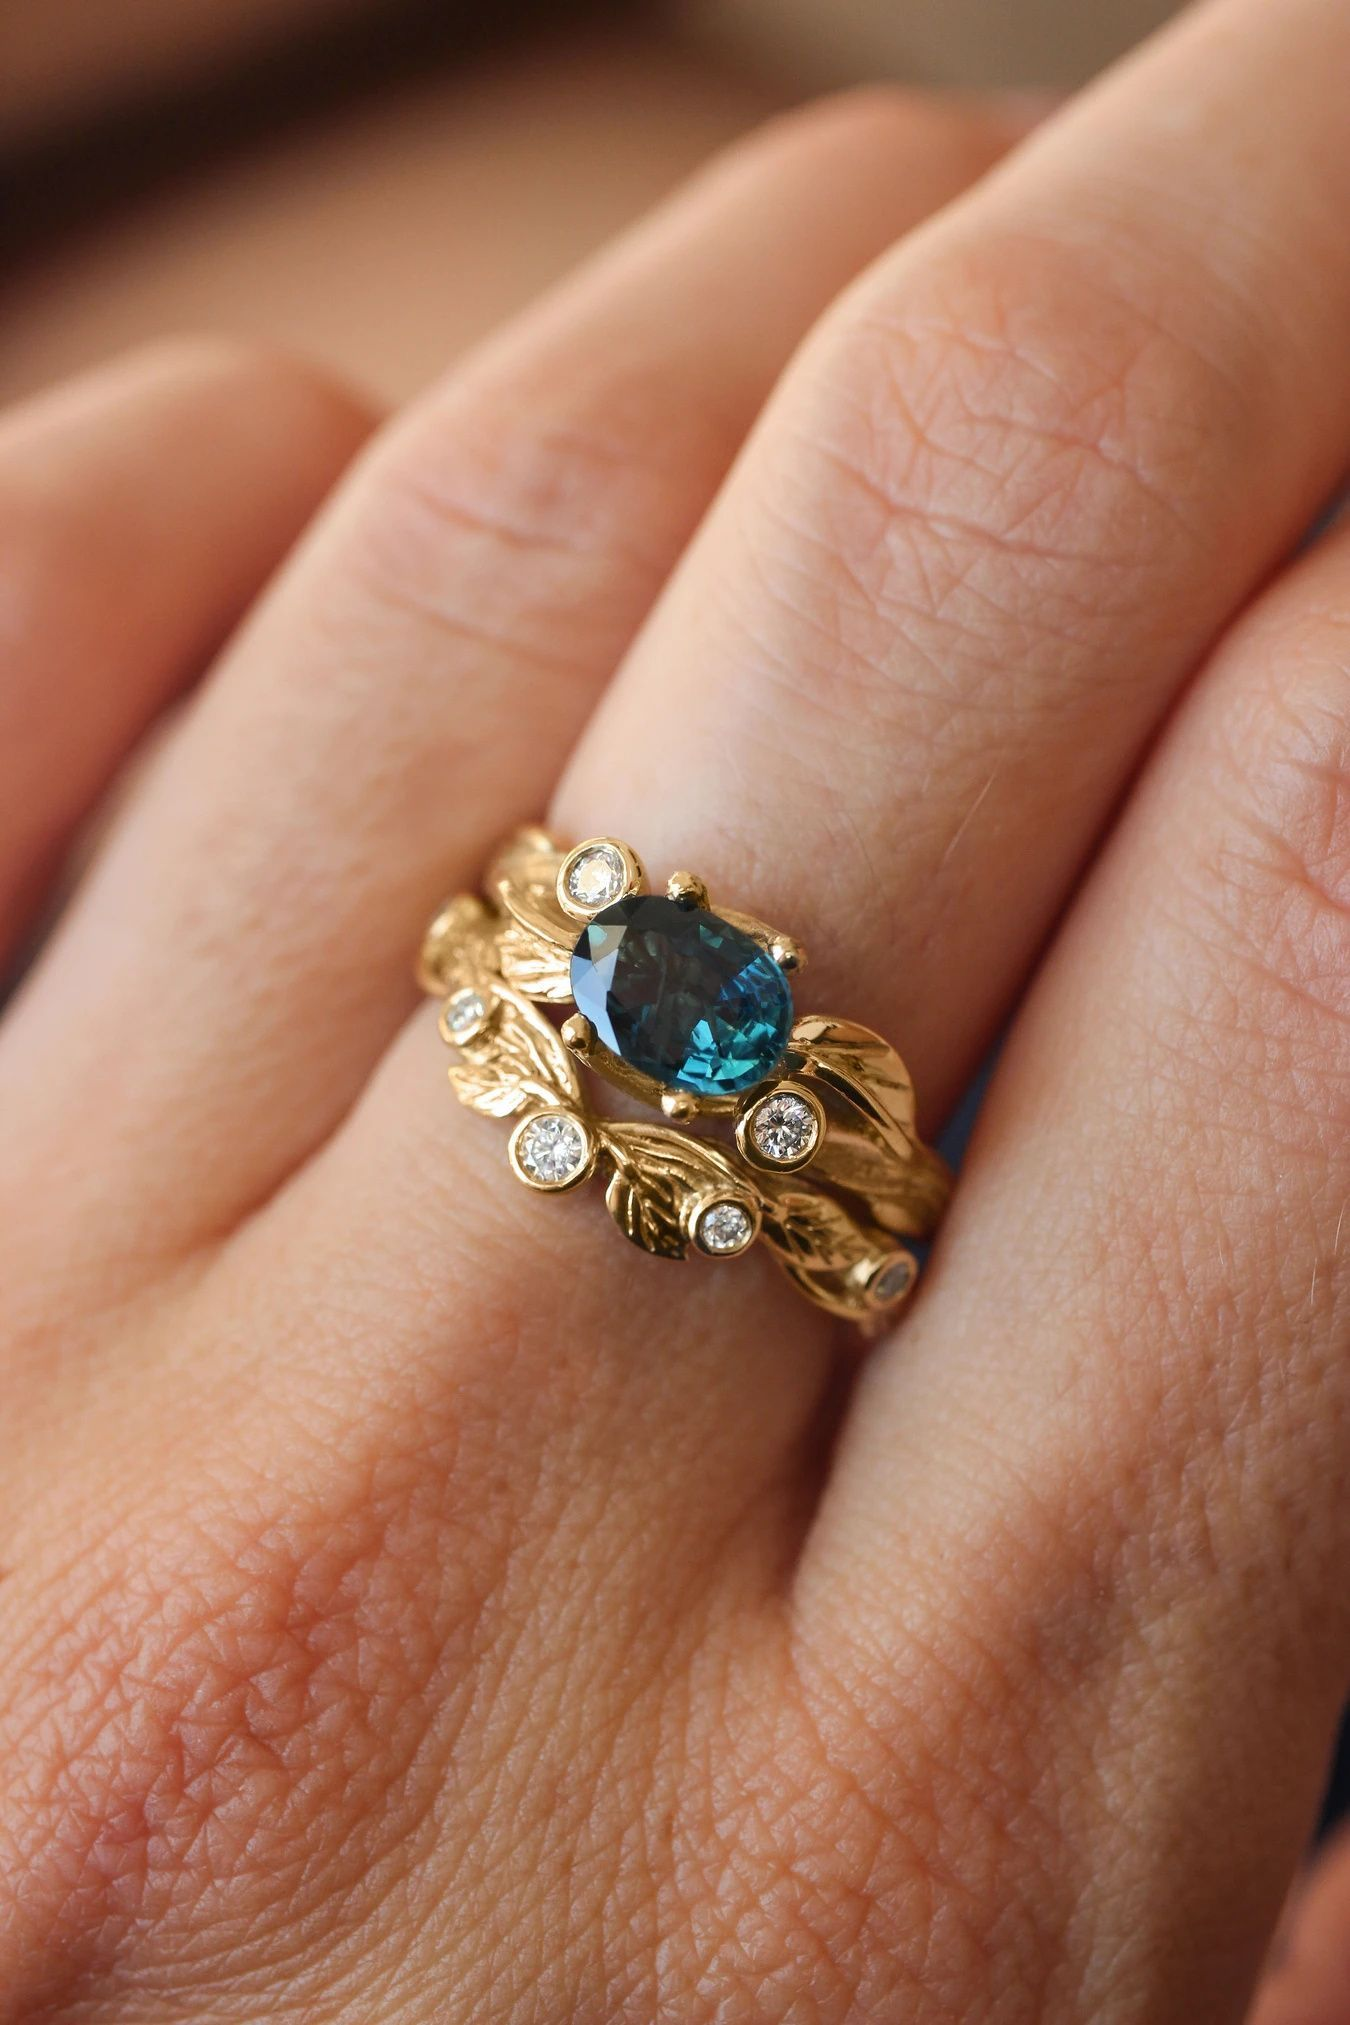 Blue sapphire engagement ring with stacking wedding band